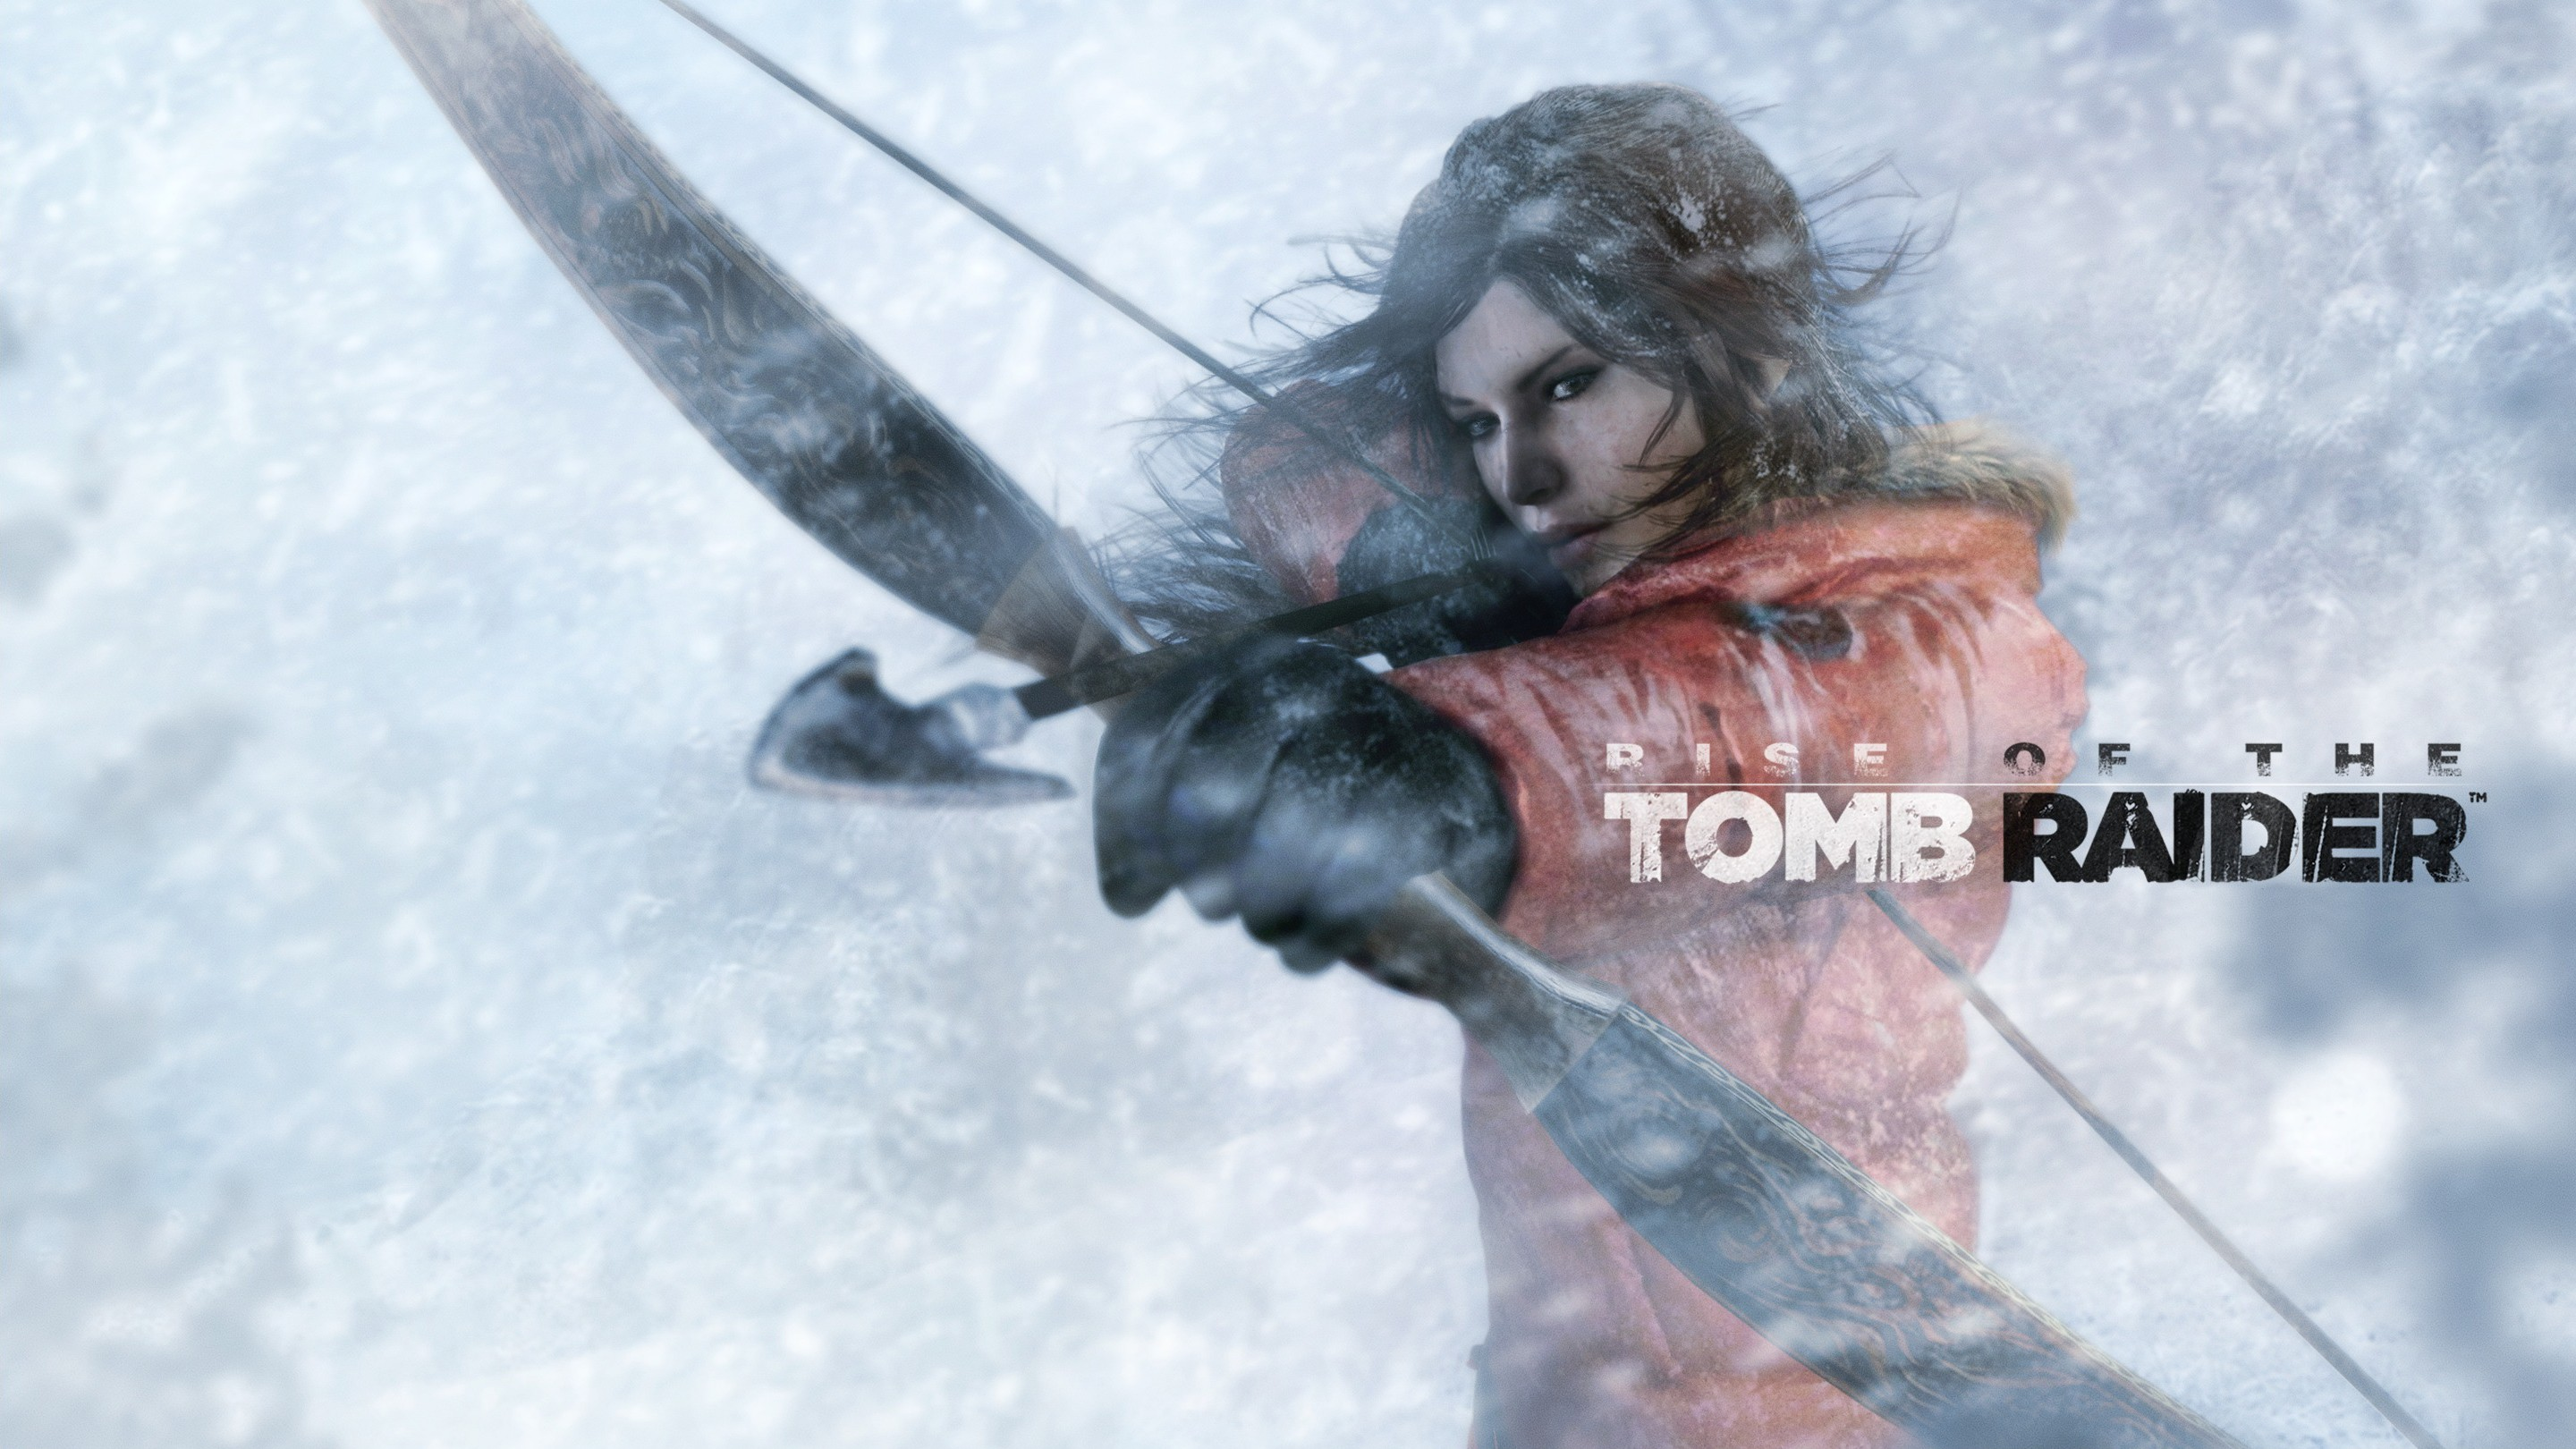 rise_of_the_tomb_raider-lara_croft-bow_and_arrow-2880x1620